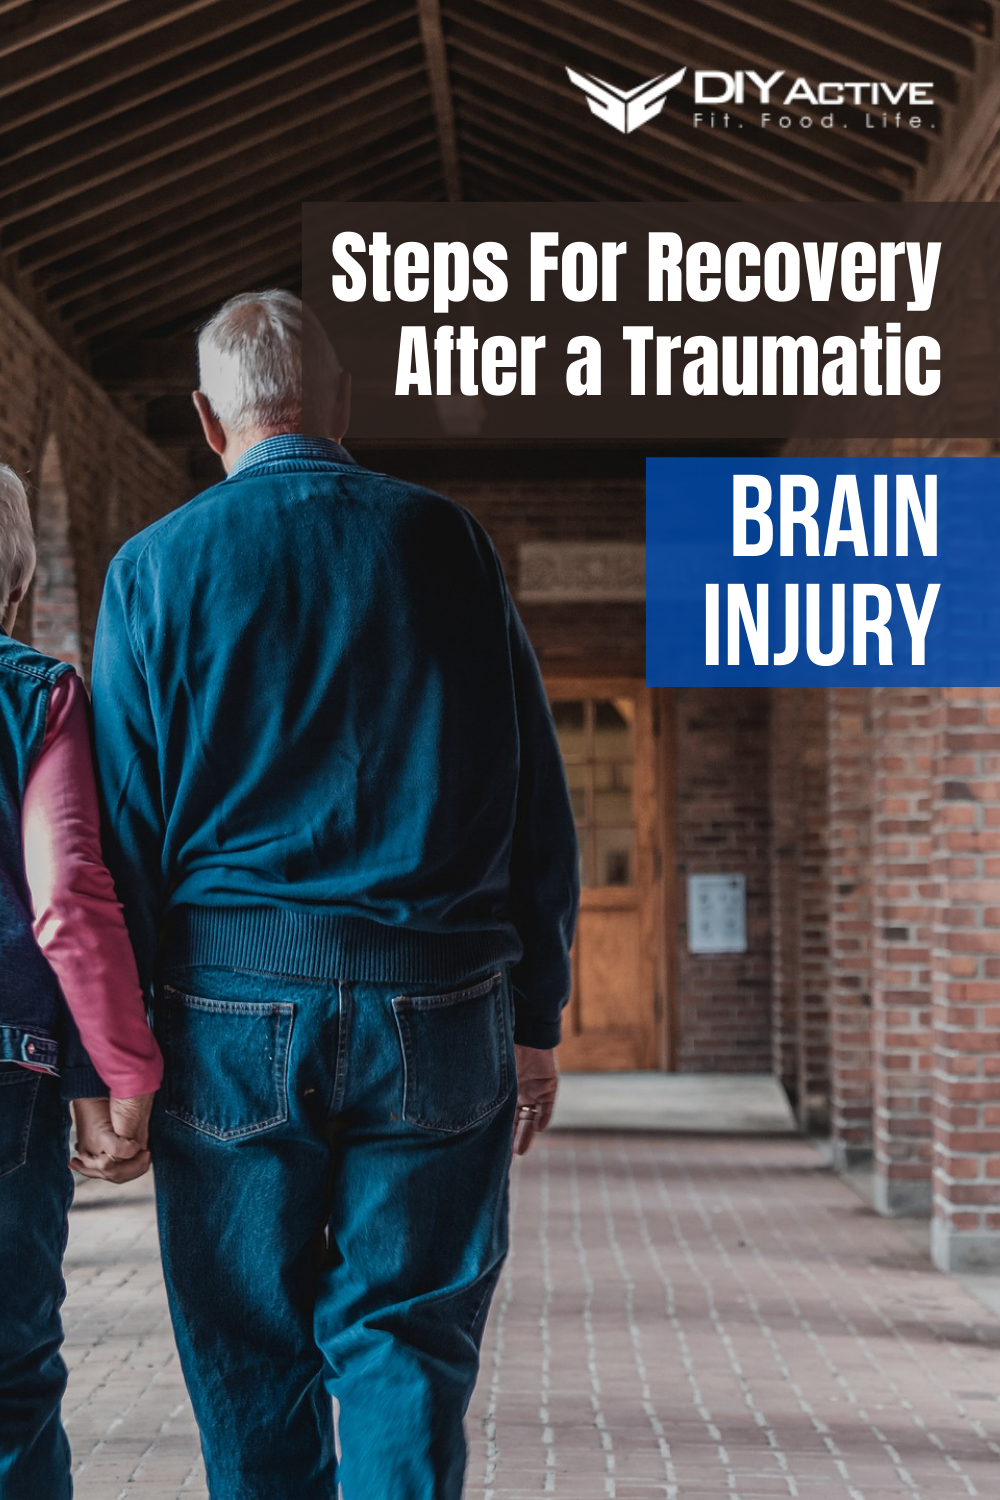 Steps For Recovery After a Traumatic Brain Injury